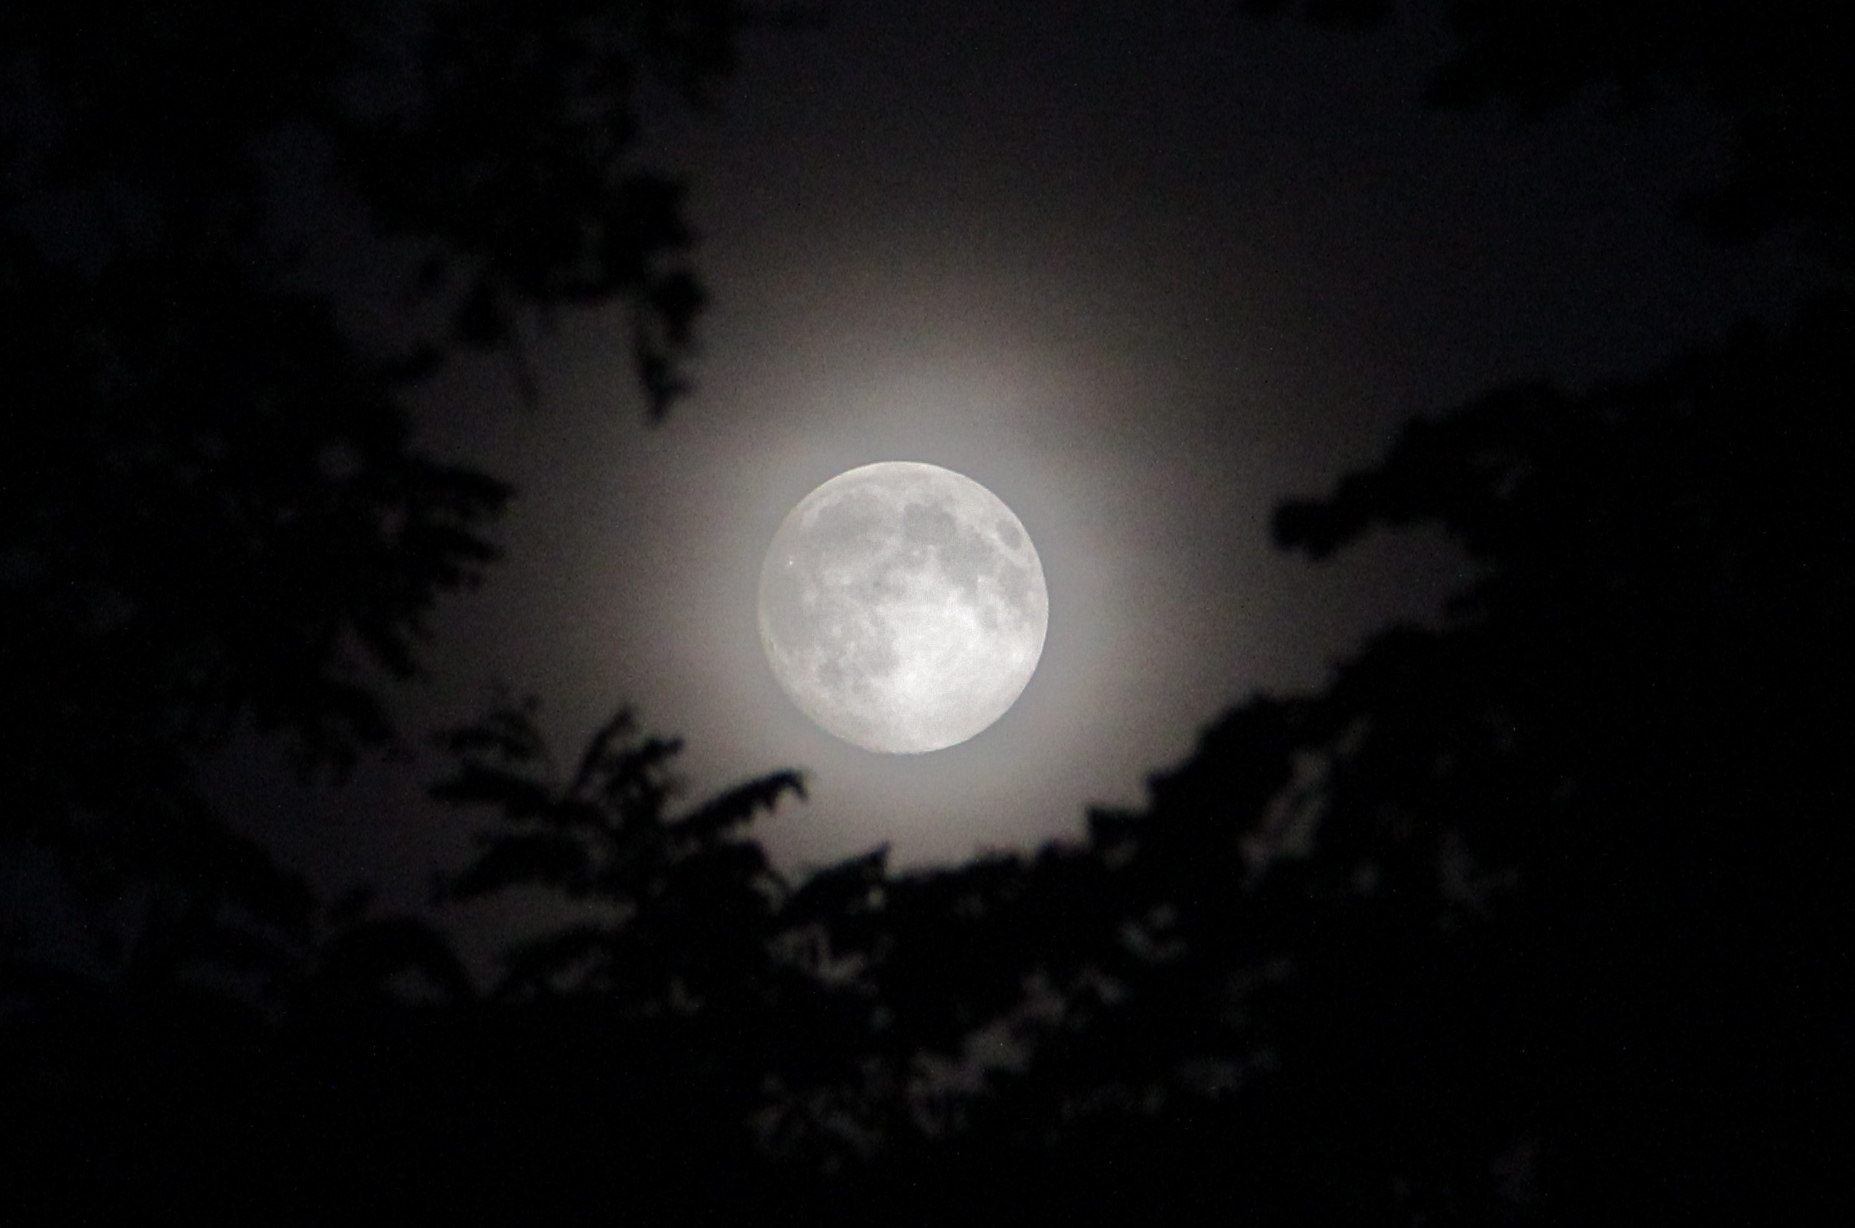 Super moon from Saturday night